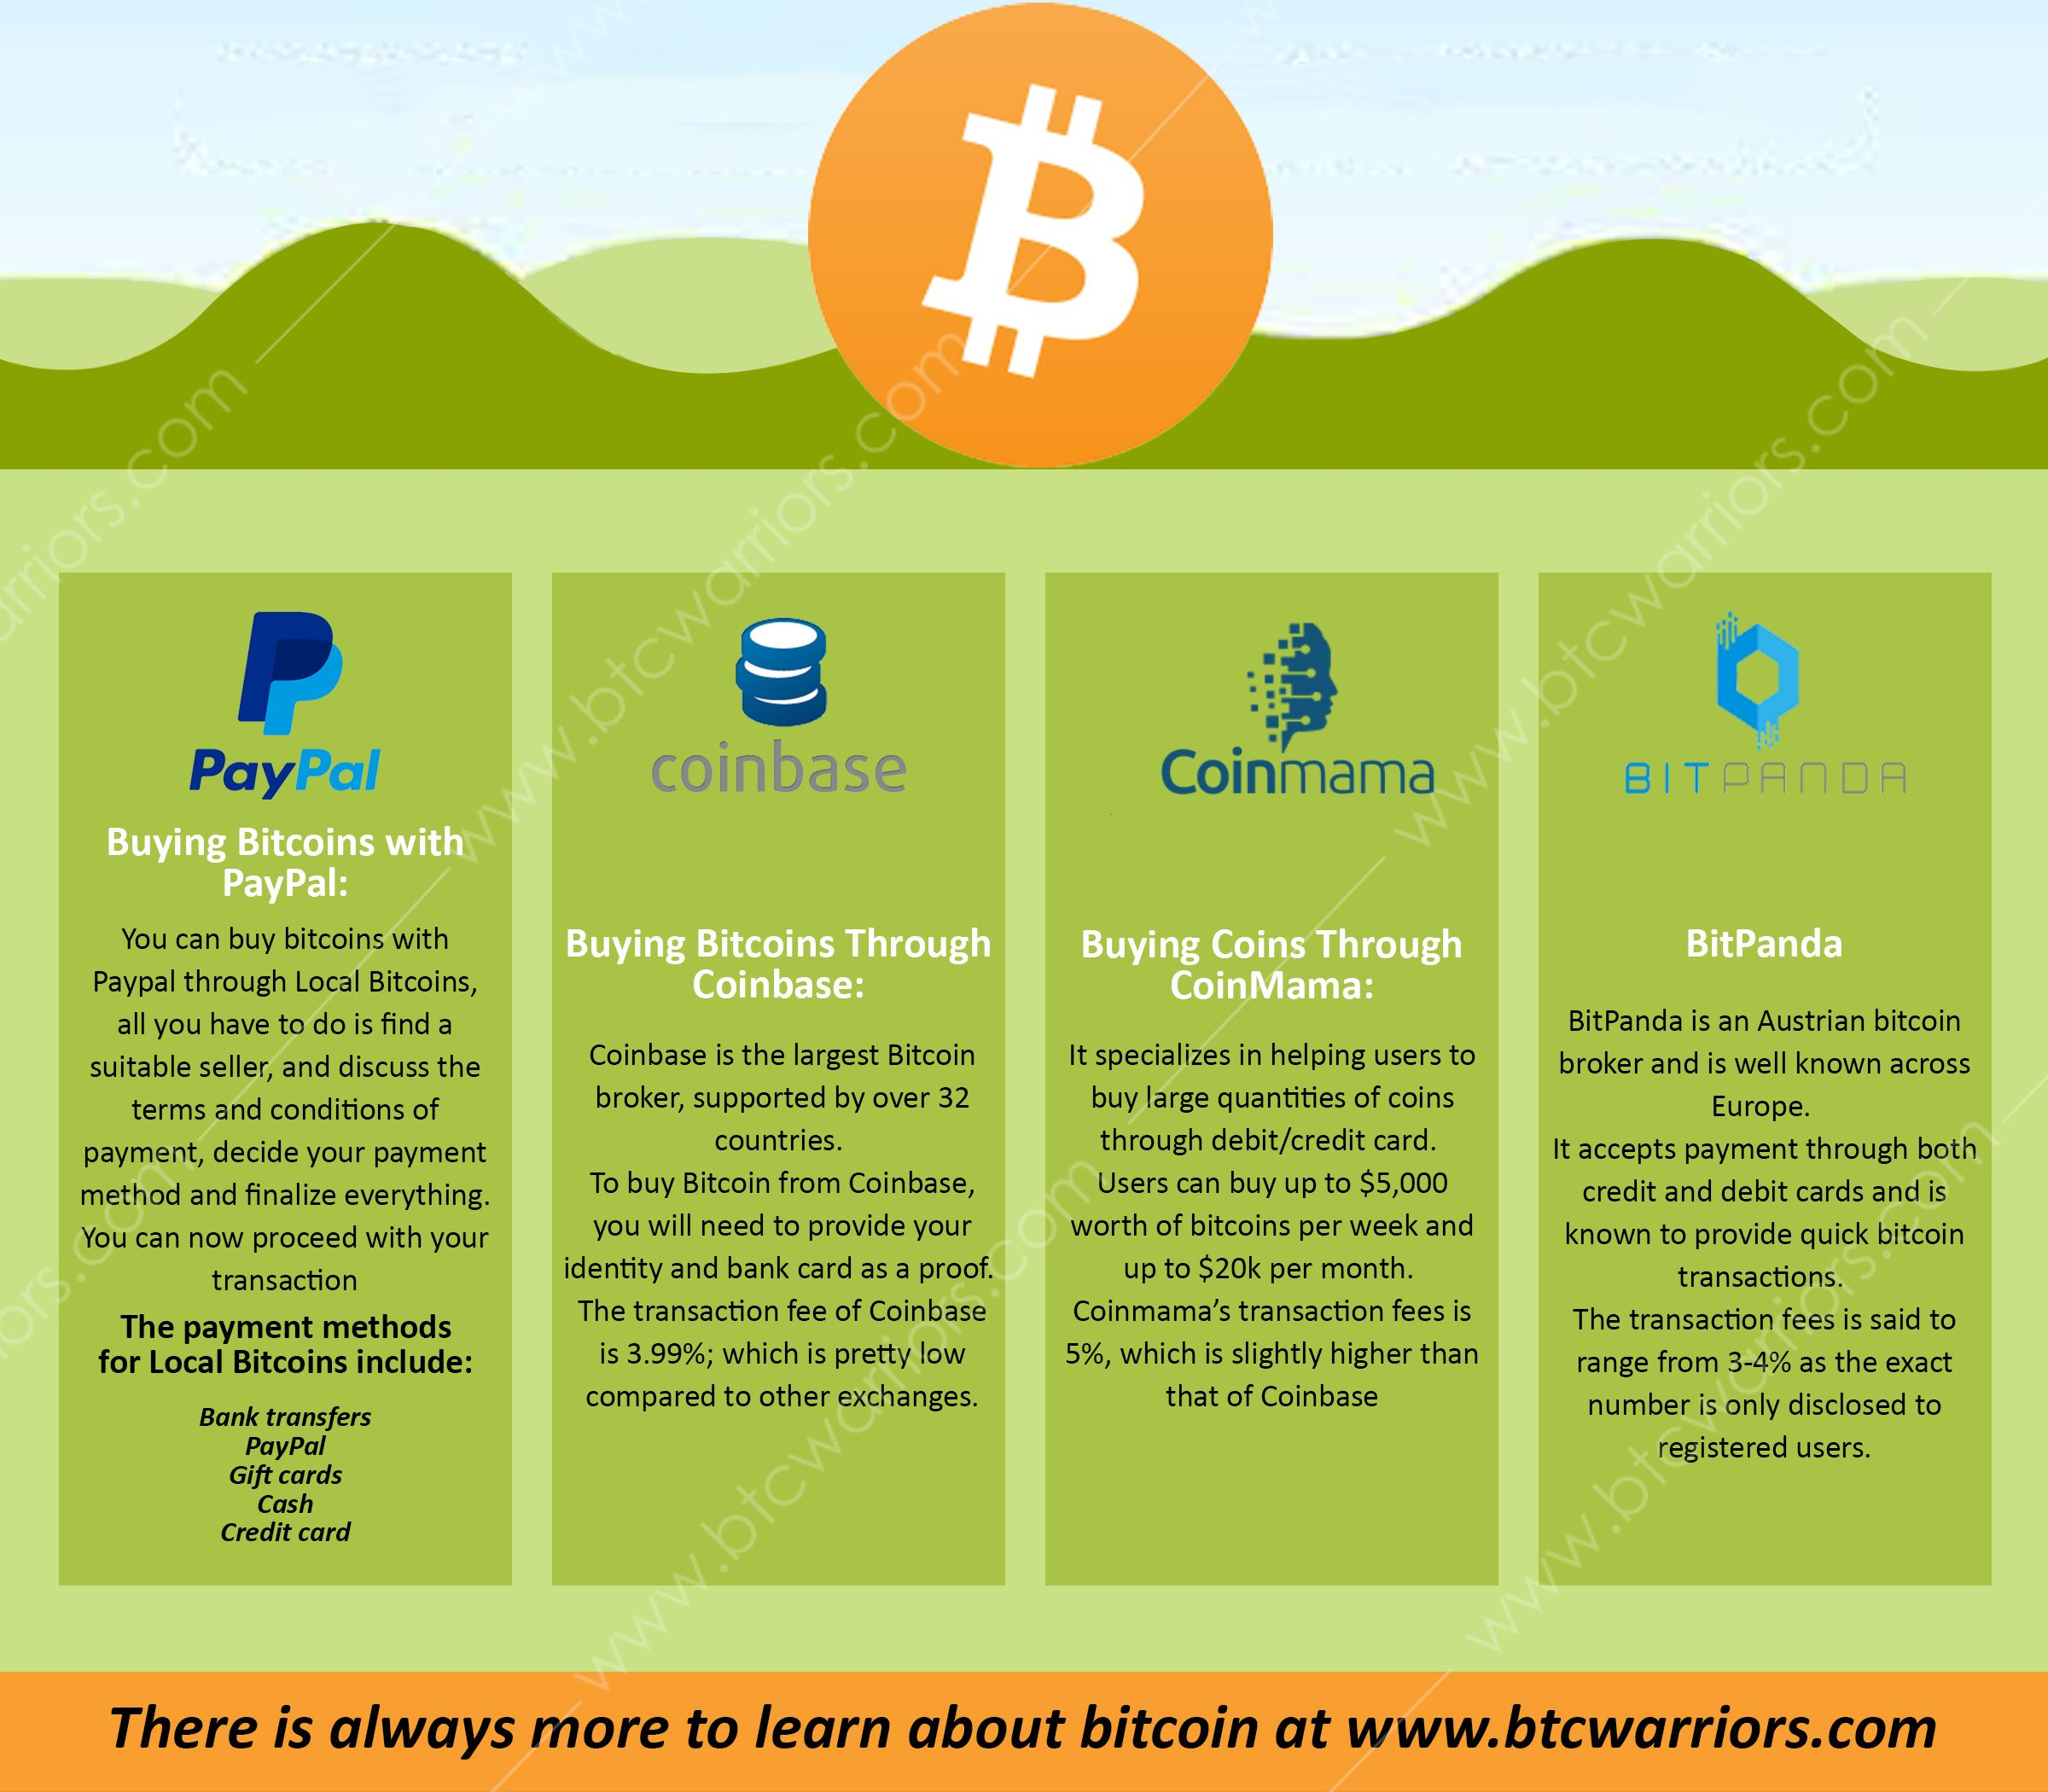 Pin by iTrust Price on Product | Buy bitcoin, Cryptocurrency